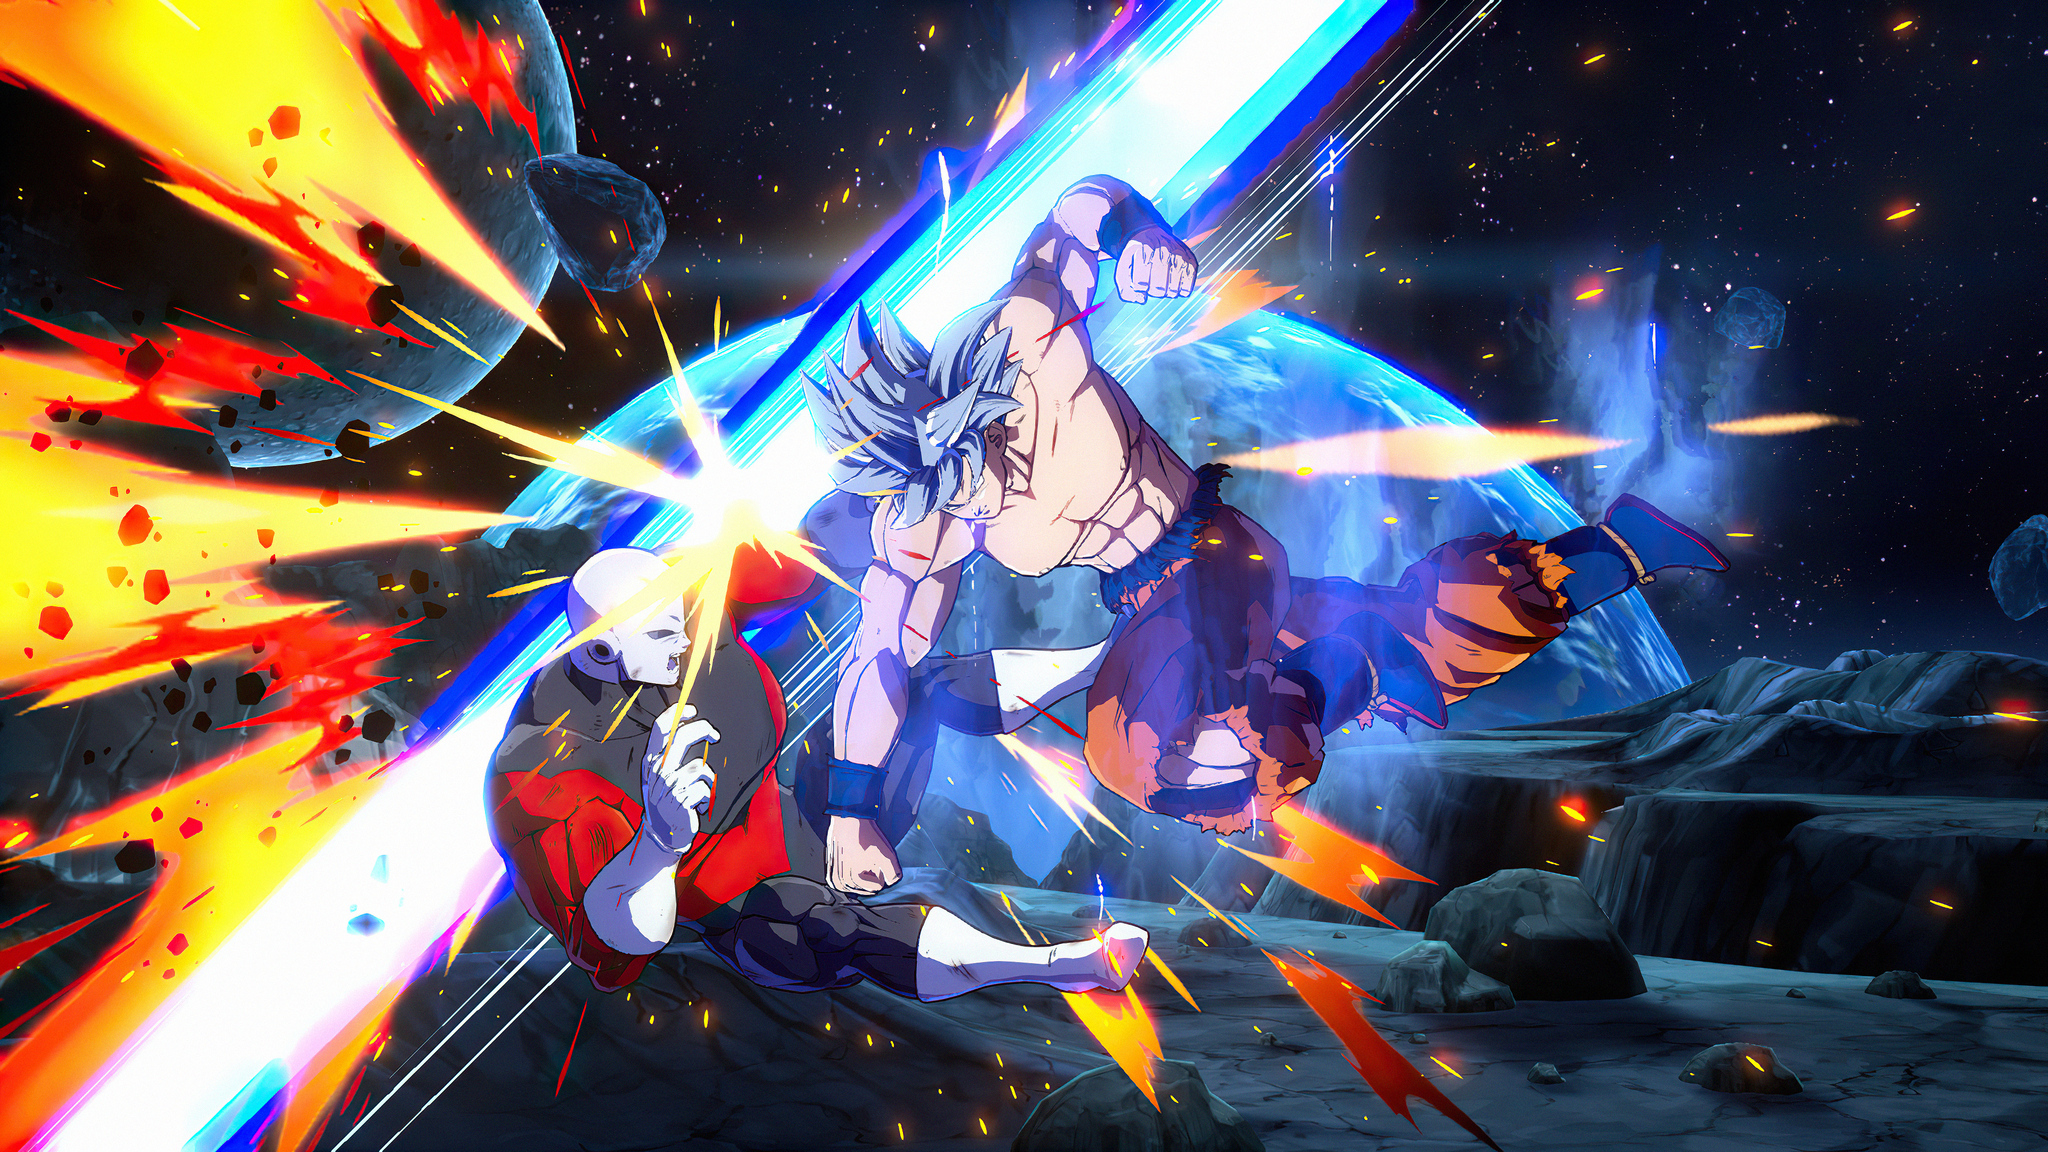 2048x1152 Dragon Ball Fighter Z 2048x1152 Resolution Hd 4k Wallpapers Images Backgrounds Photos And Pictures